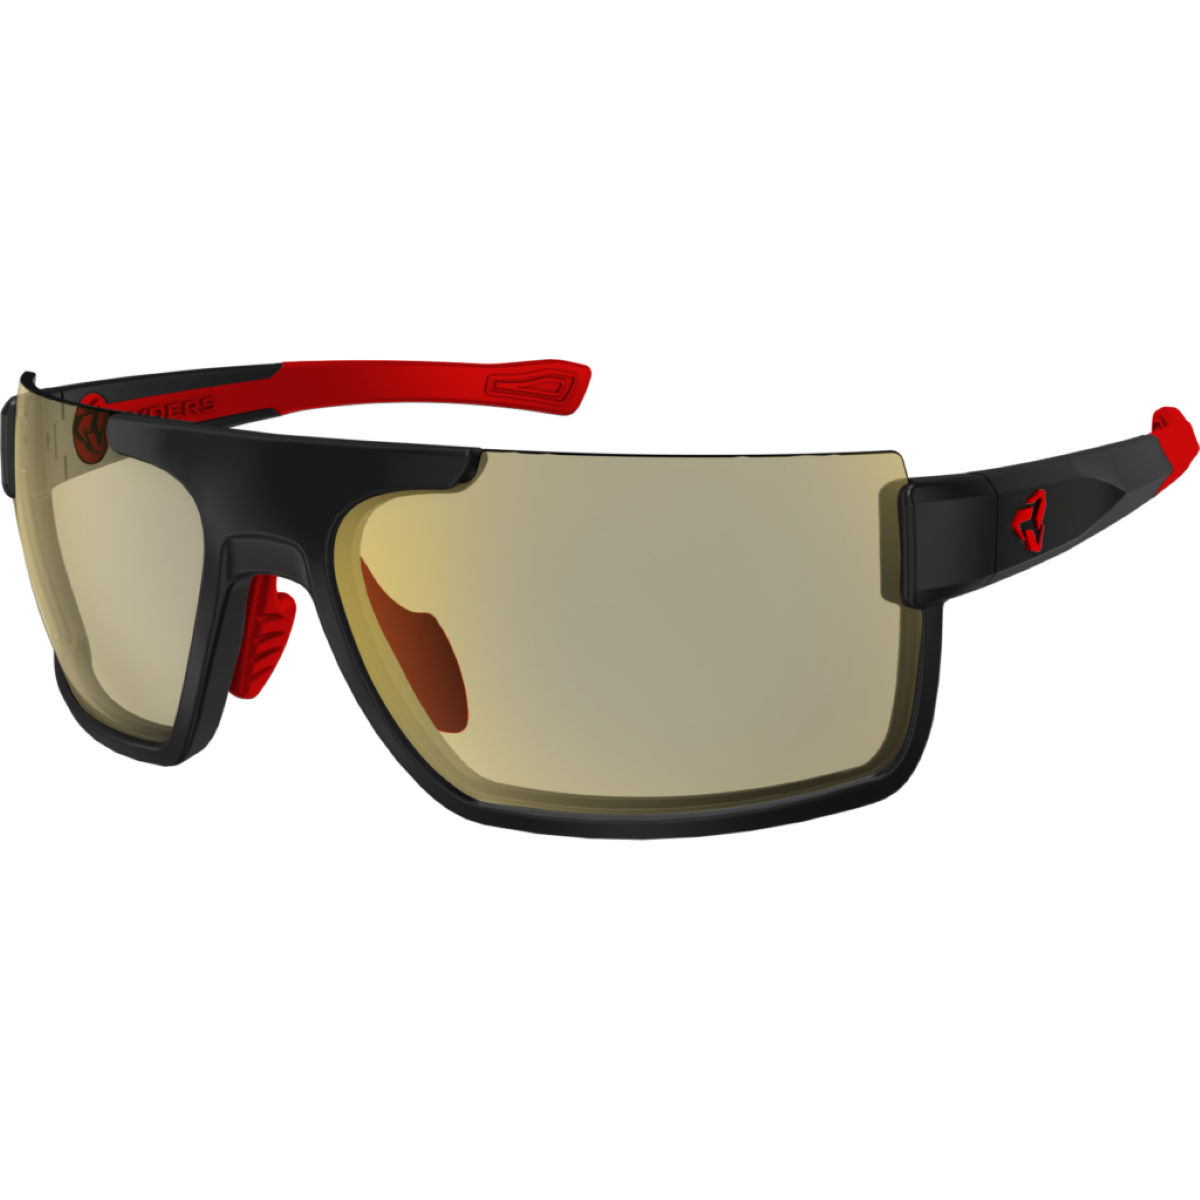 Ryders Eyewear Incline Fyre Anti-Fog Sunglasses - Gafas de sol